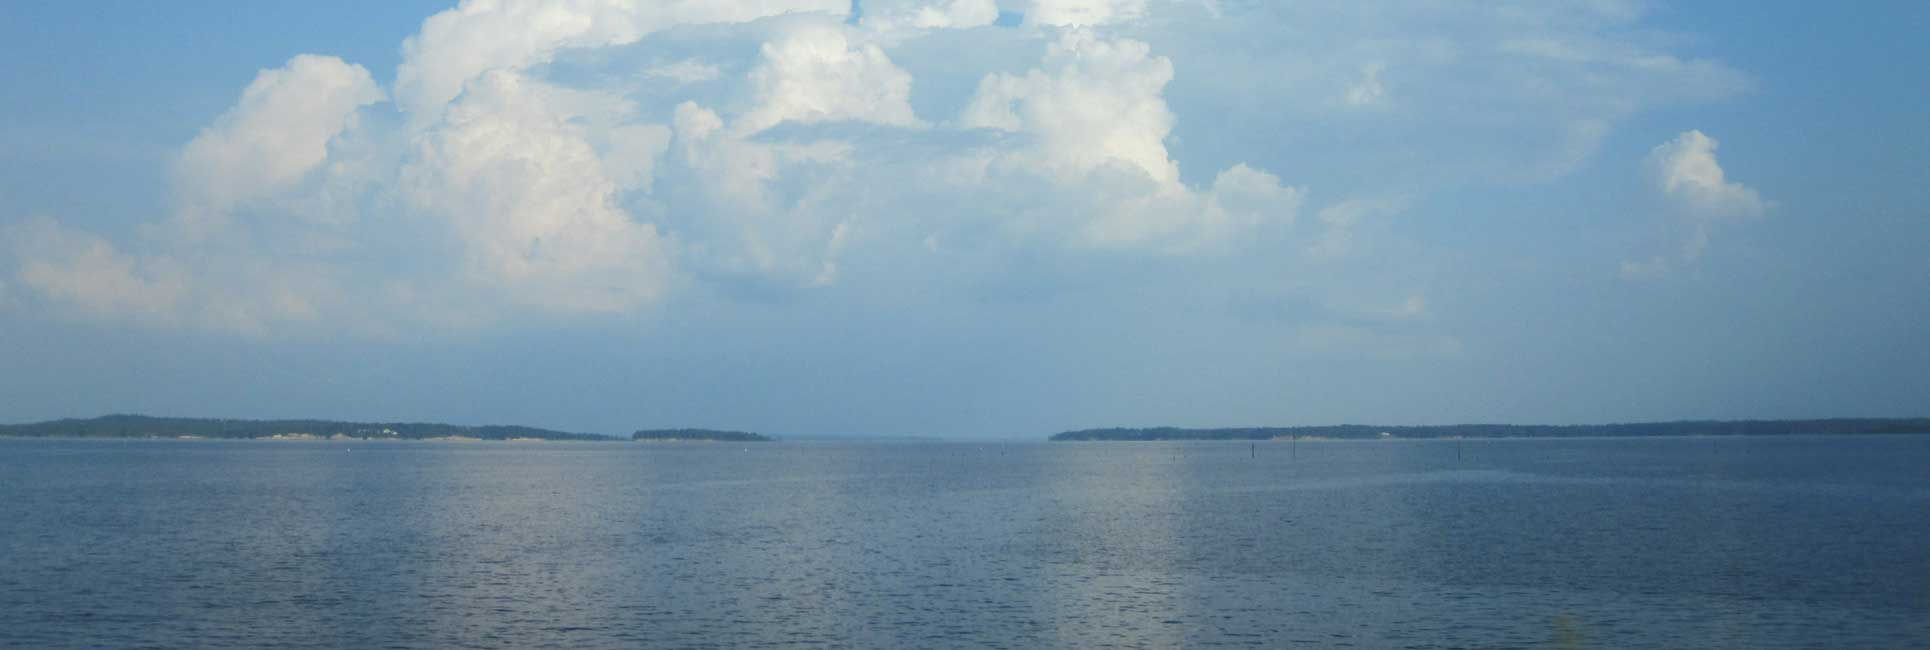 A view of the horizon line on Toledo Bend Louisiana on the left and Texas on the right